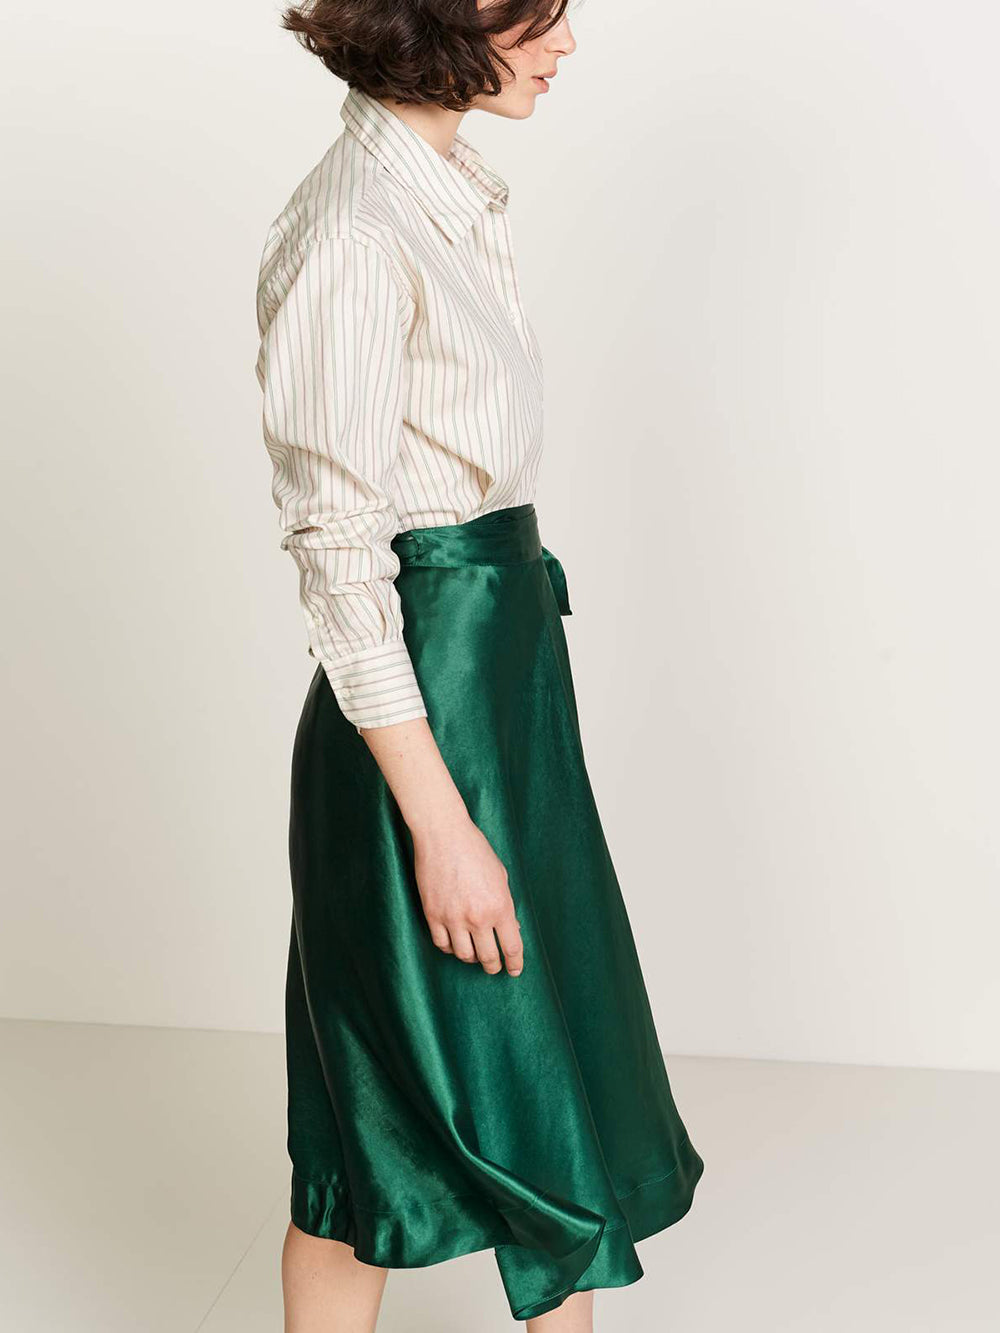 bellerose suez skirt in amazone